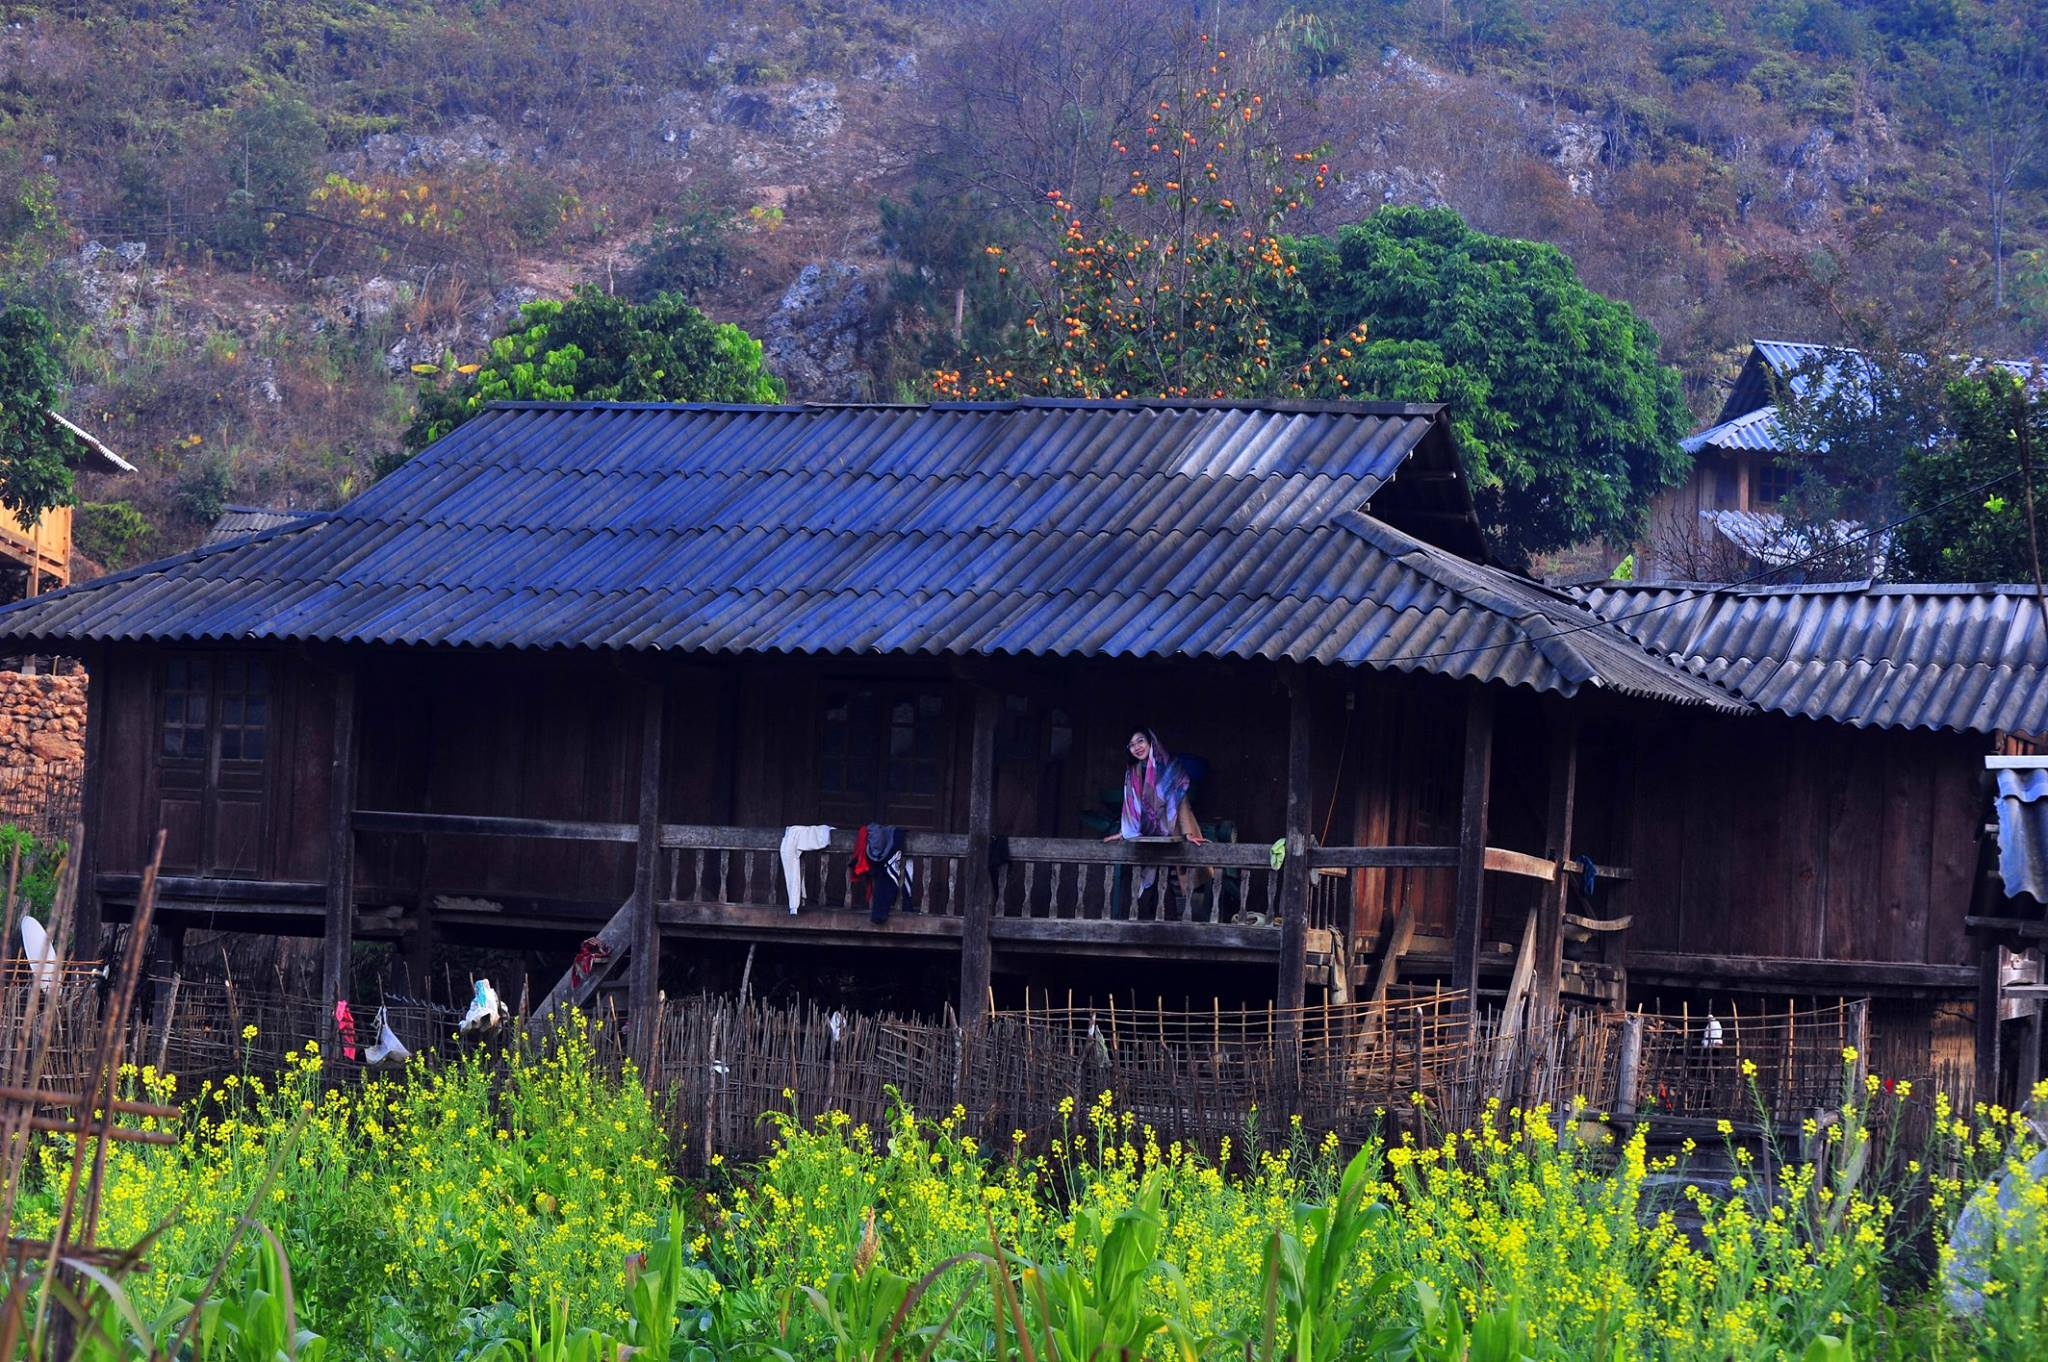 mu-cang-chai-mua-nuoc-do-vietmountain-travel2